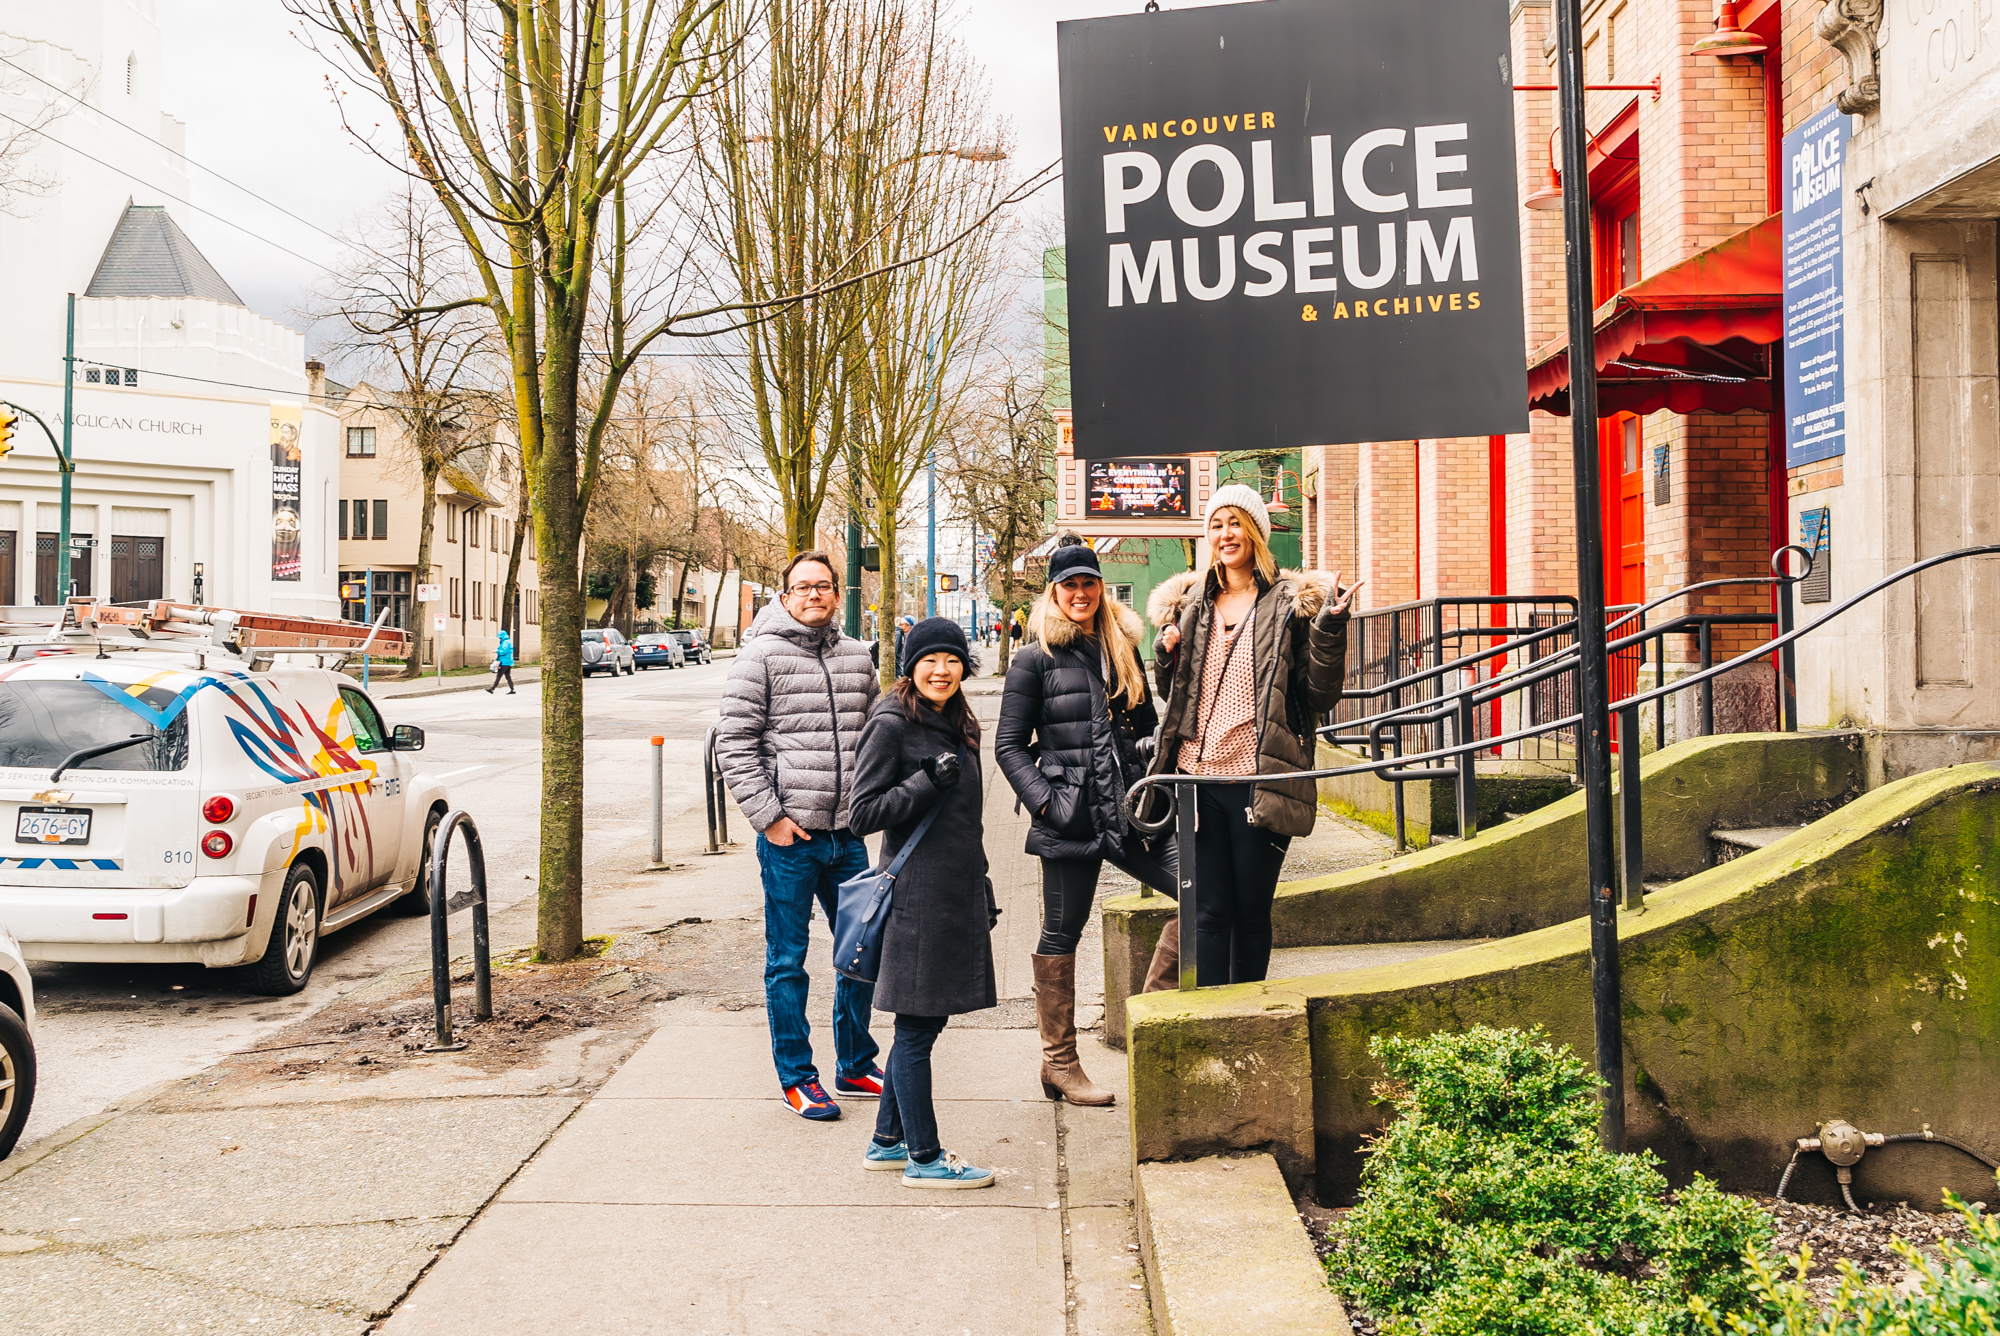 Entrance into the vancouver Police Museum